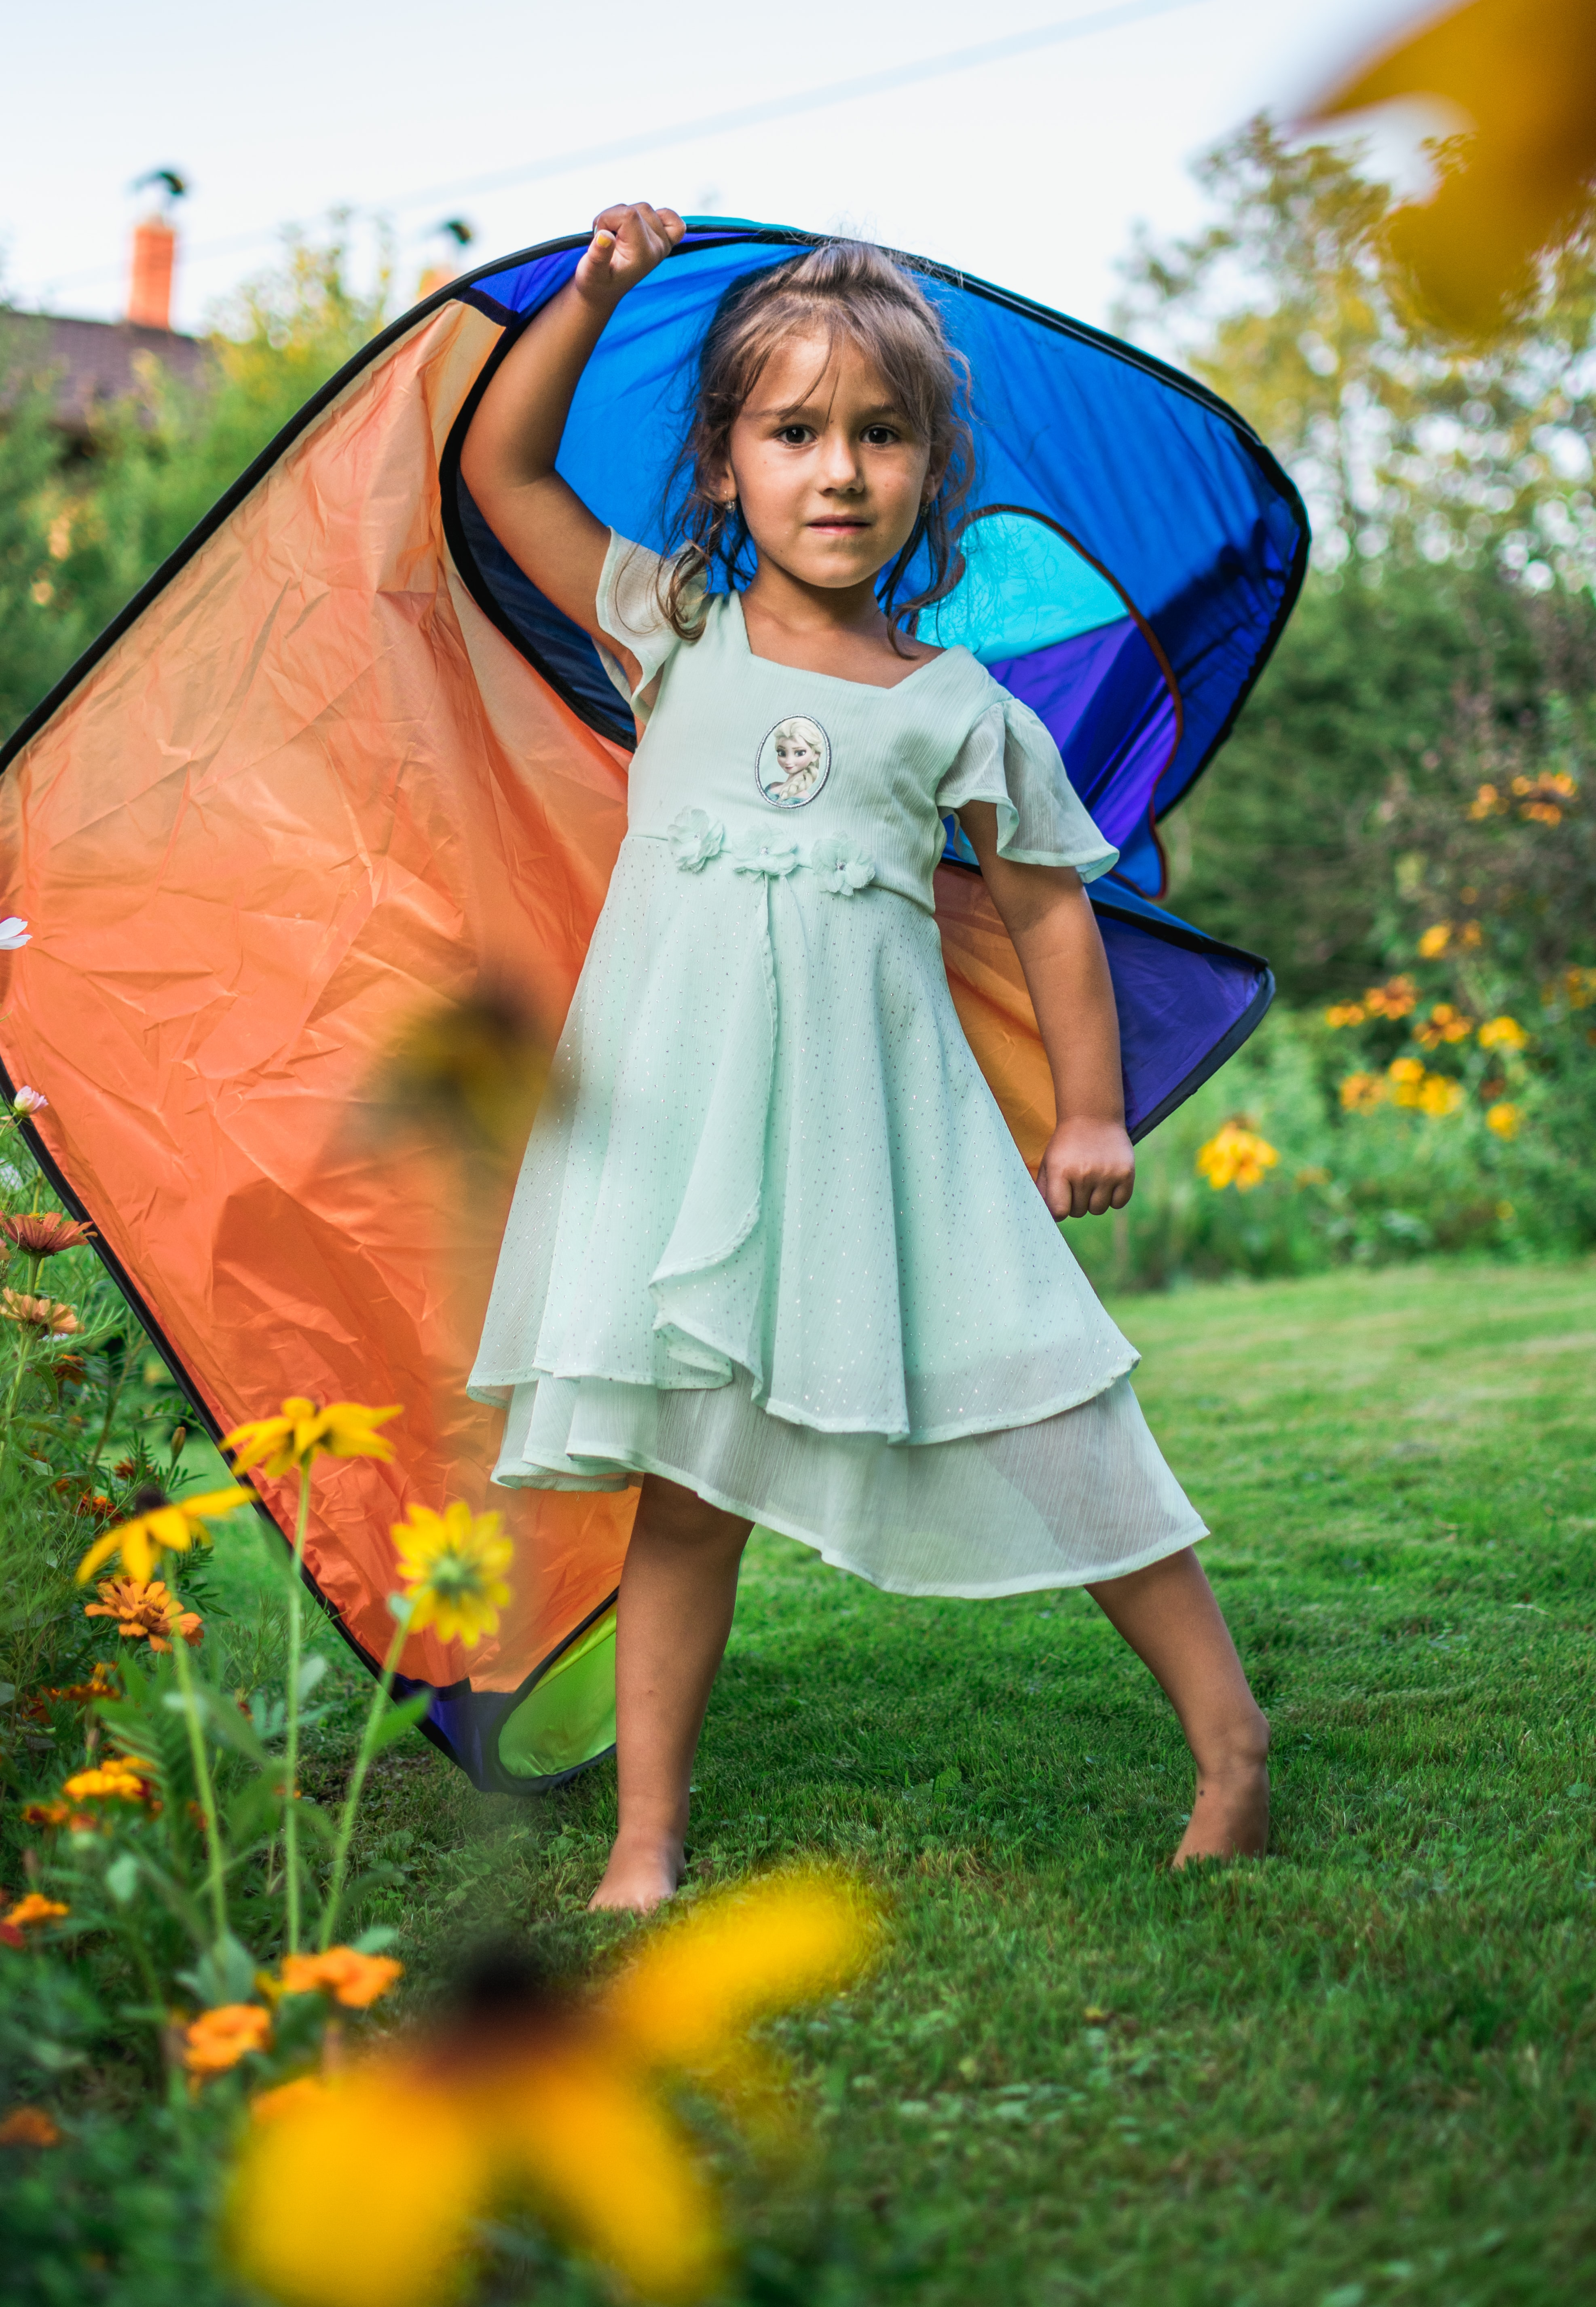 photo of girl holding tent